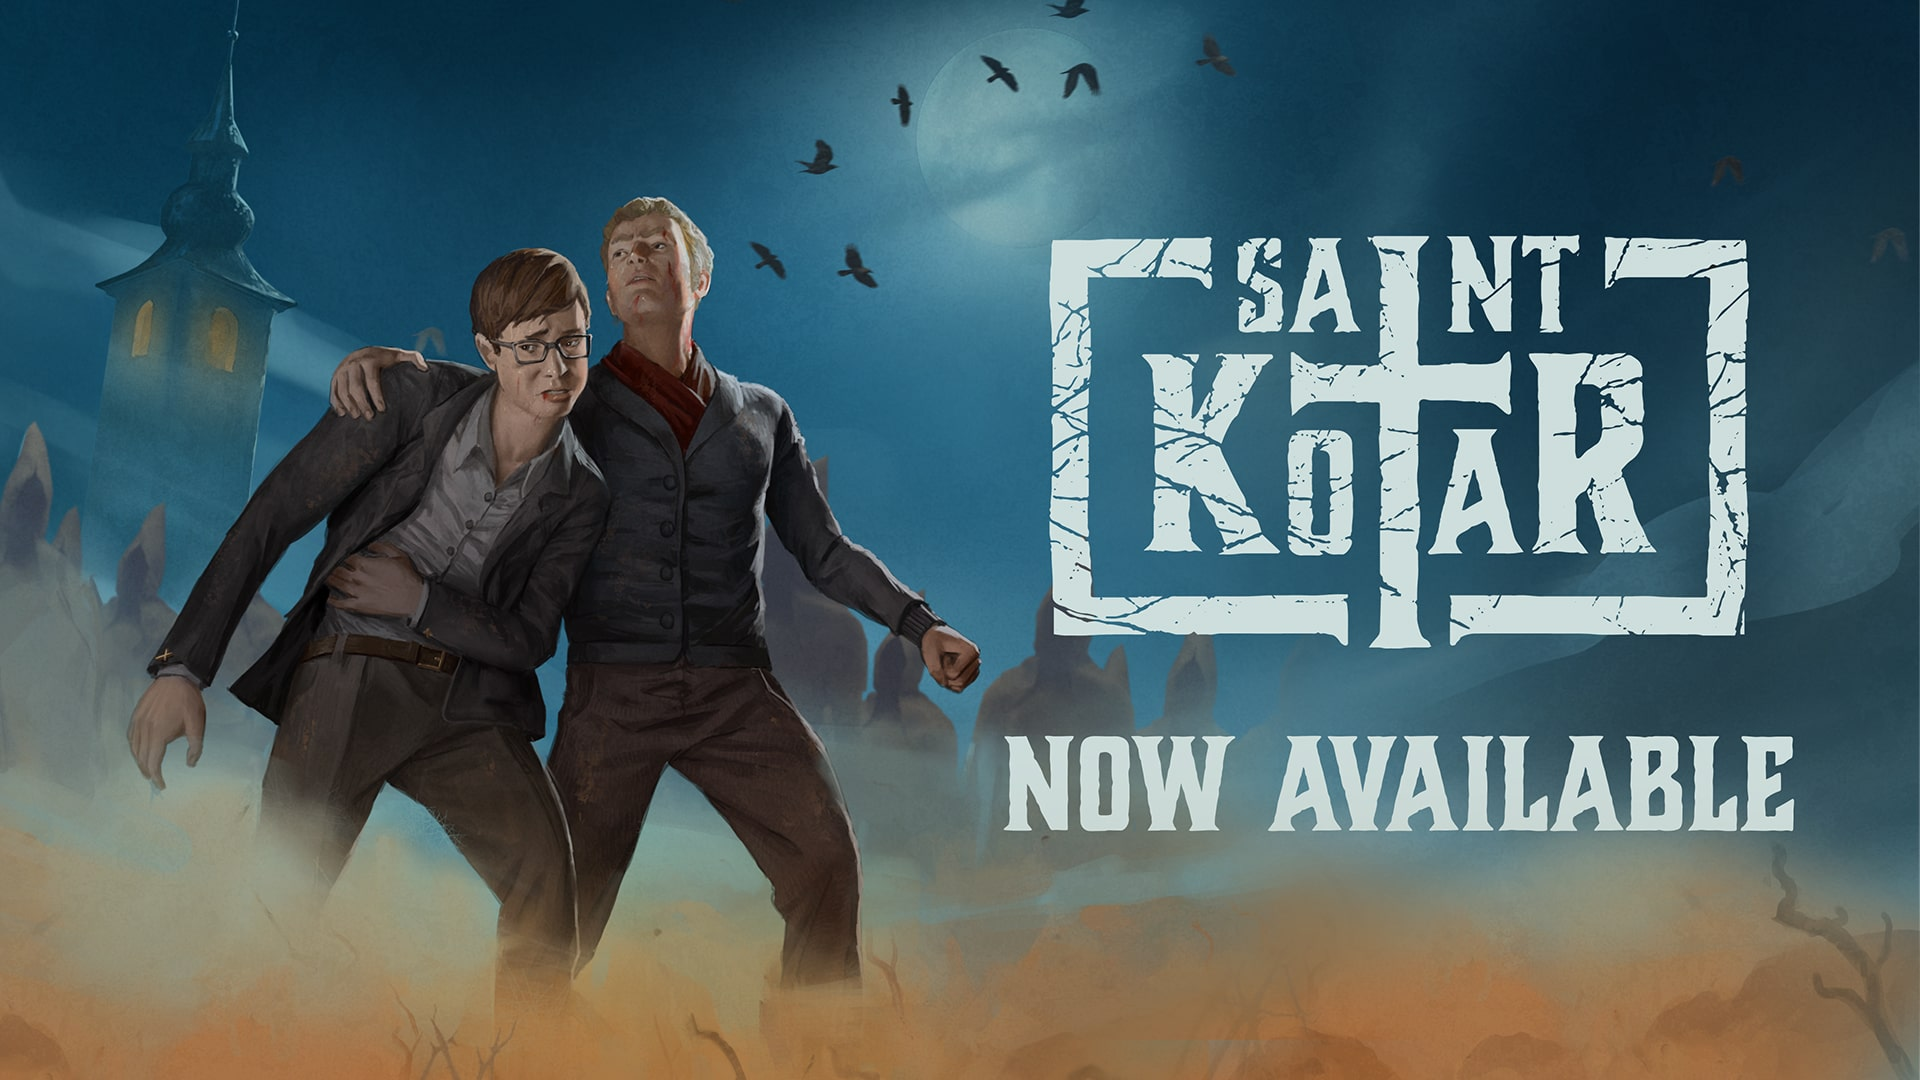 Saint Kotar releases today with a new chilling launch trailer